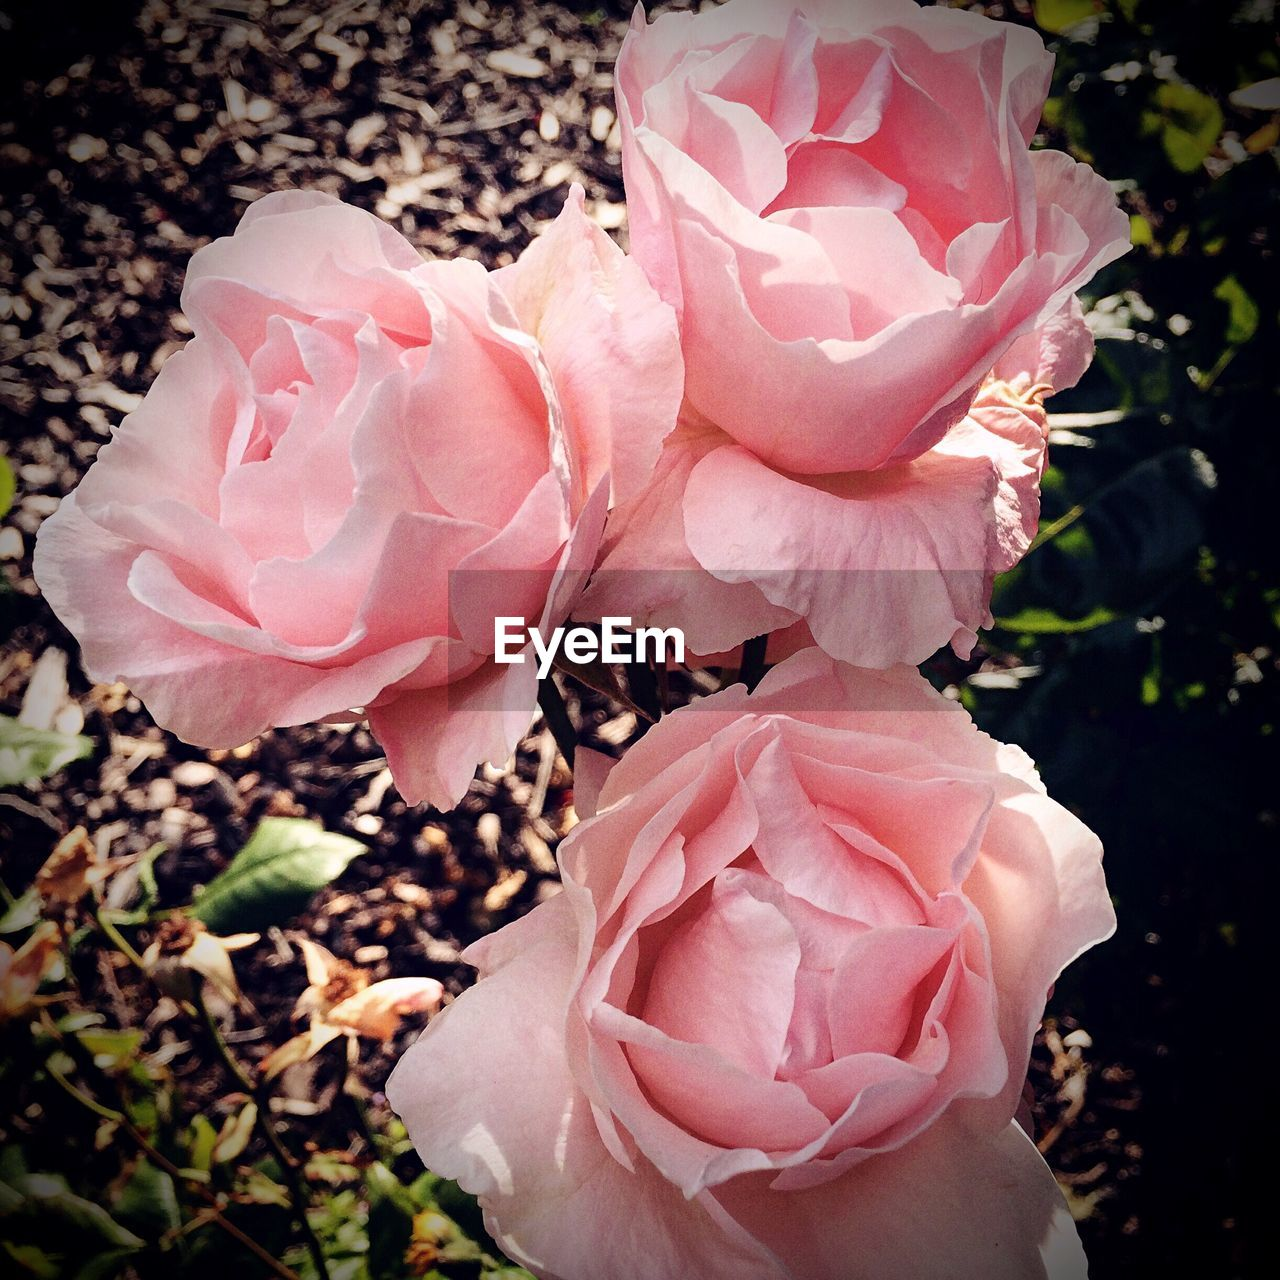 flower, petal, nature, beauty in nature, growth, flower head, plant, blooming, fragility, pink color, pink, no people, spring, outdoors, peony, close-up, freshness, day